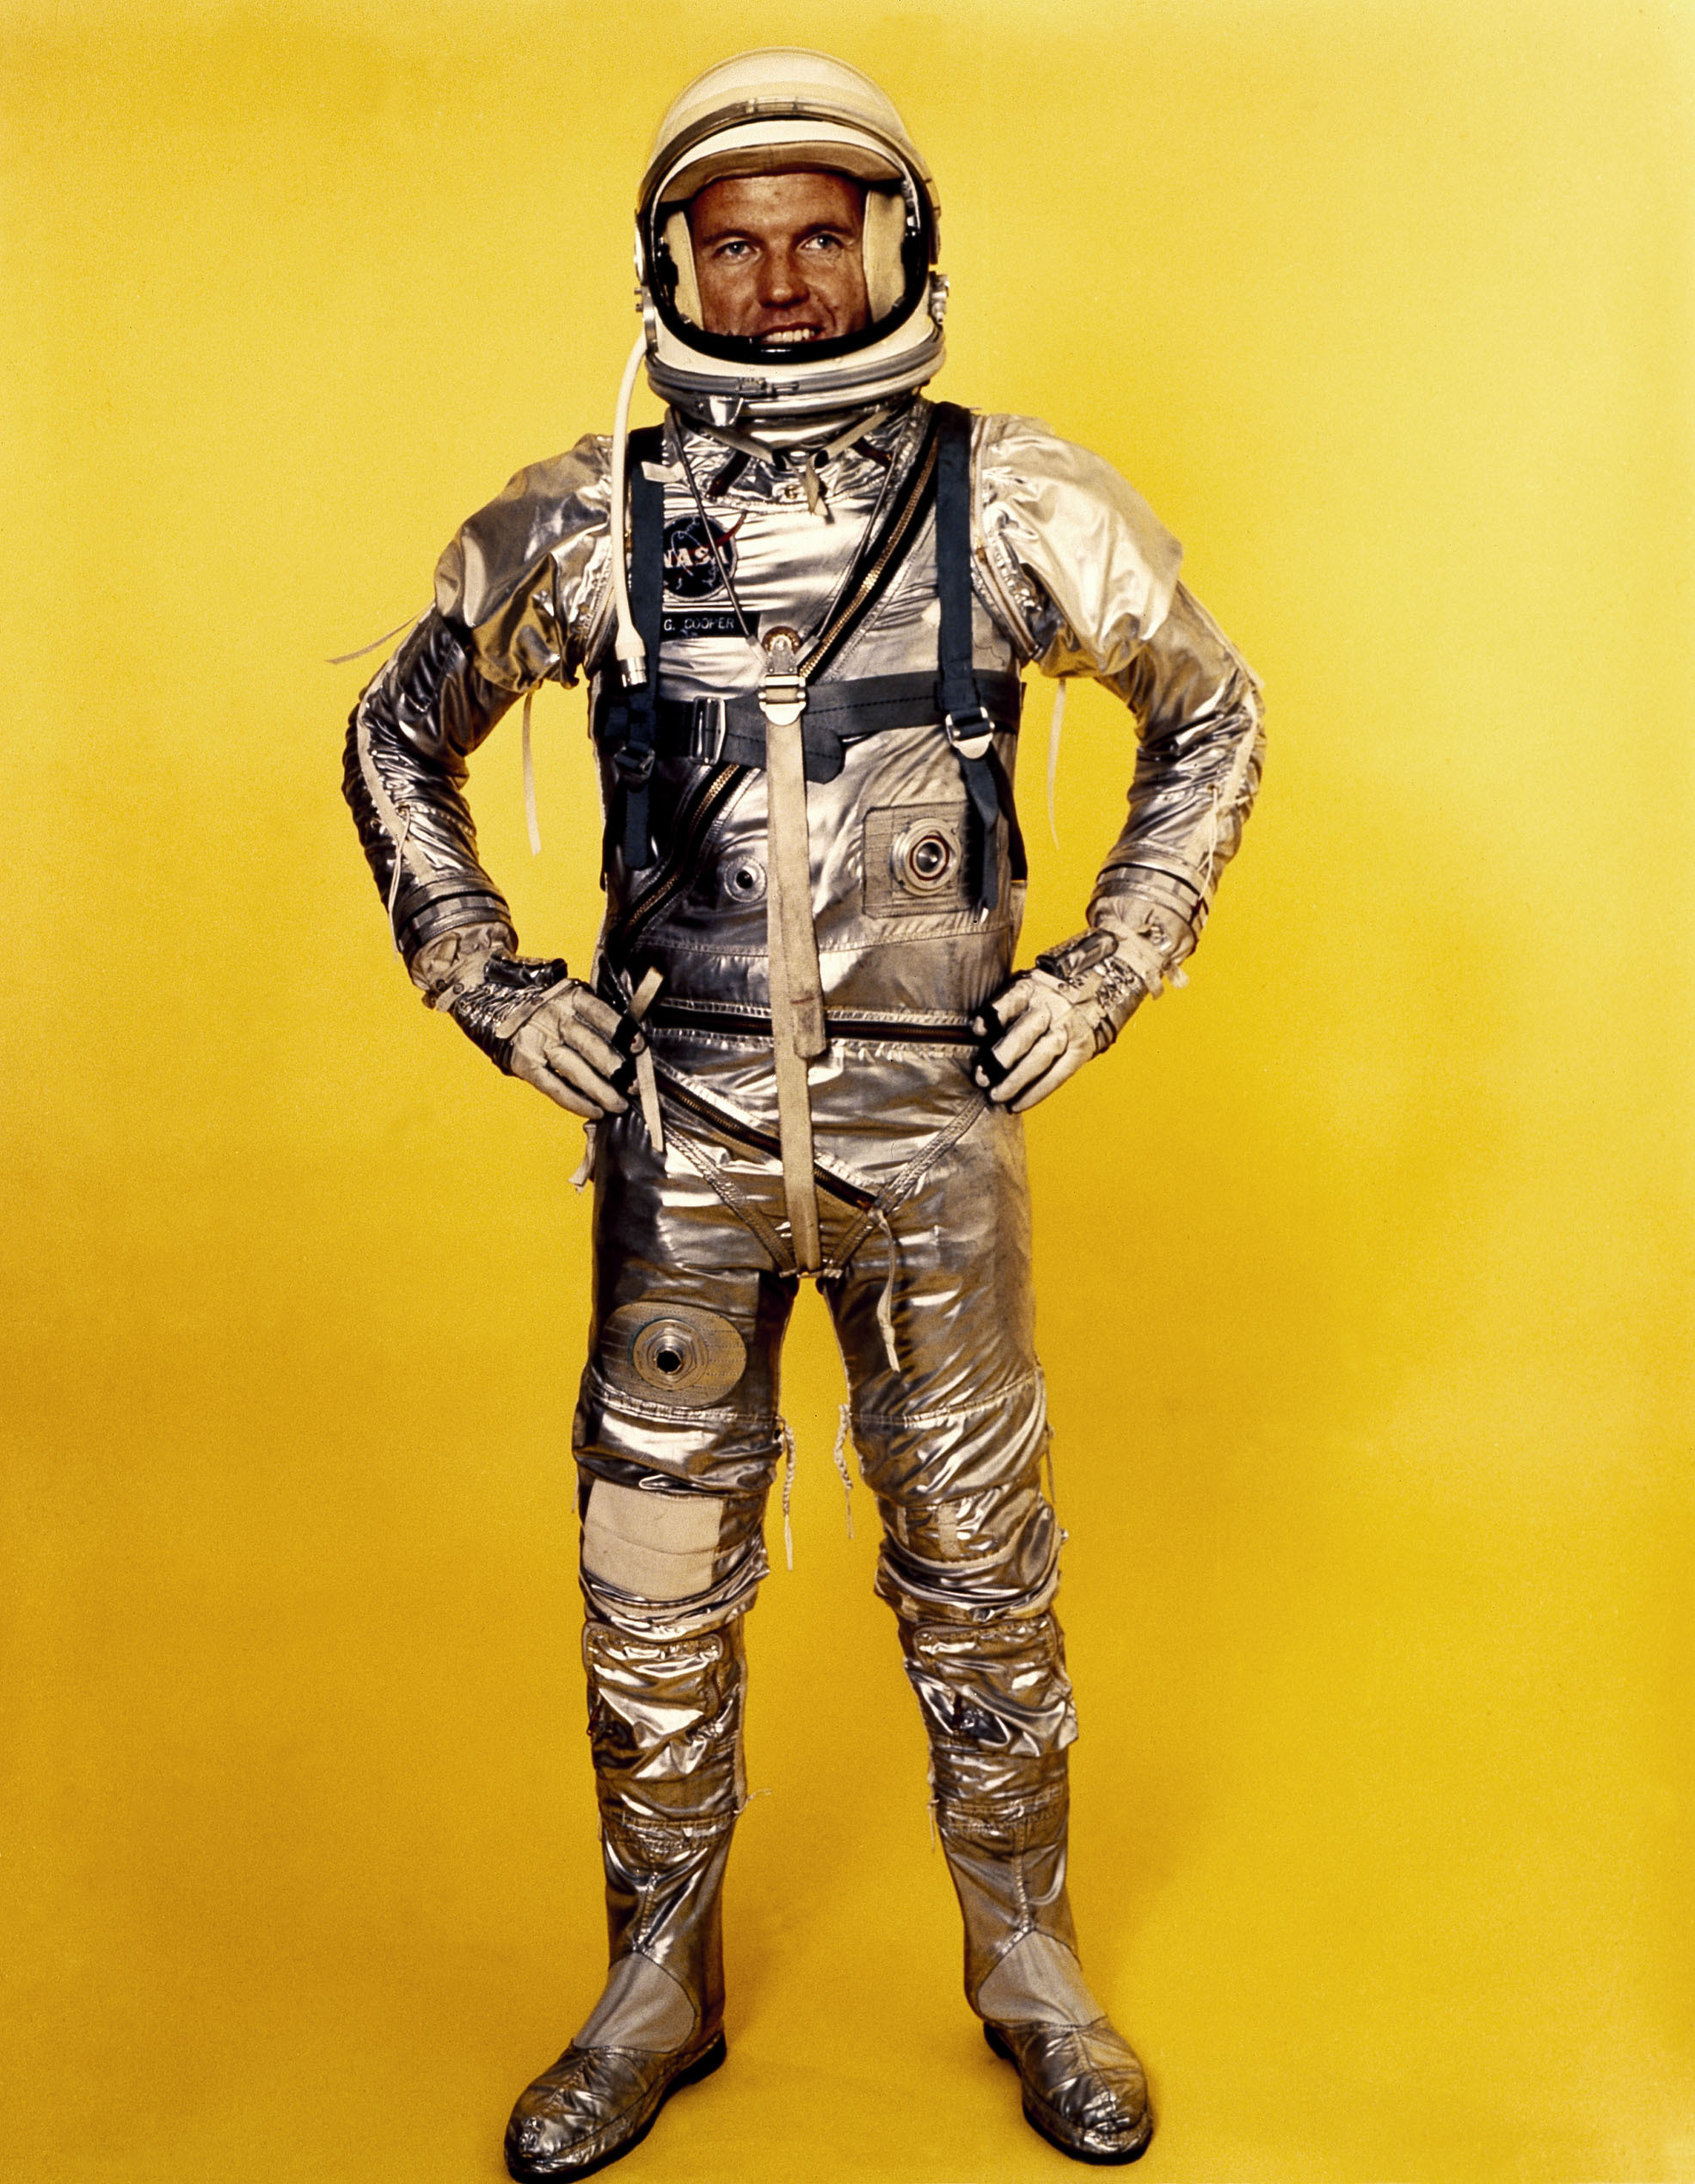 A converted high-altitude aircraft pressure suit